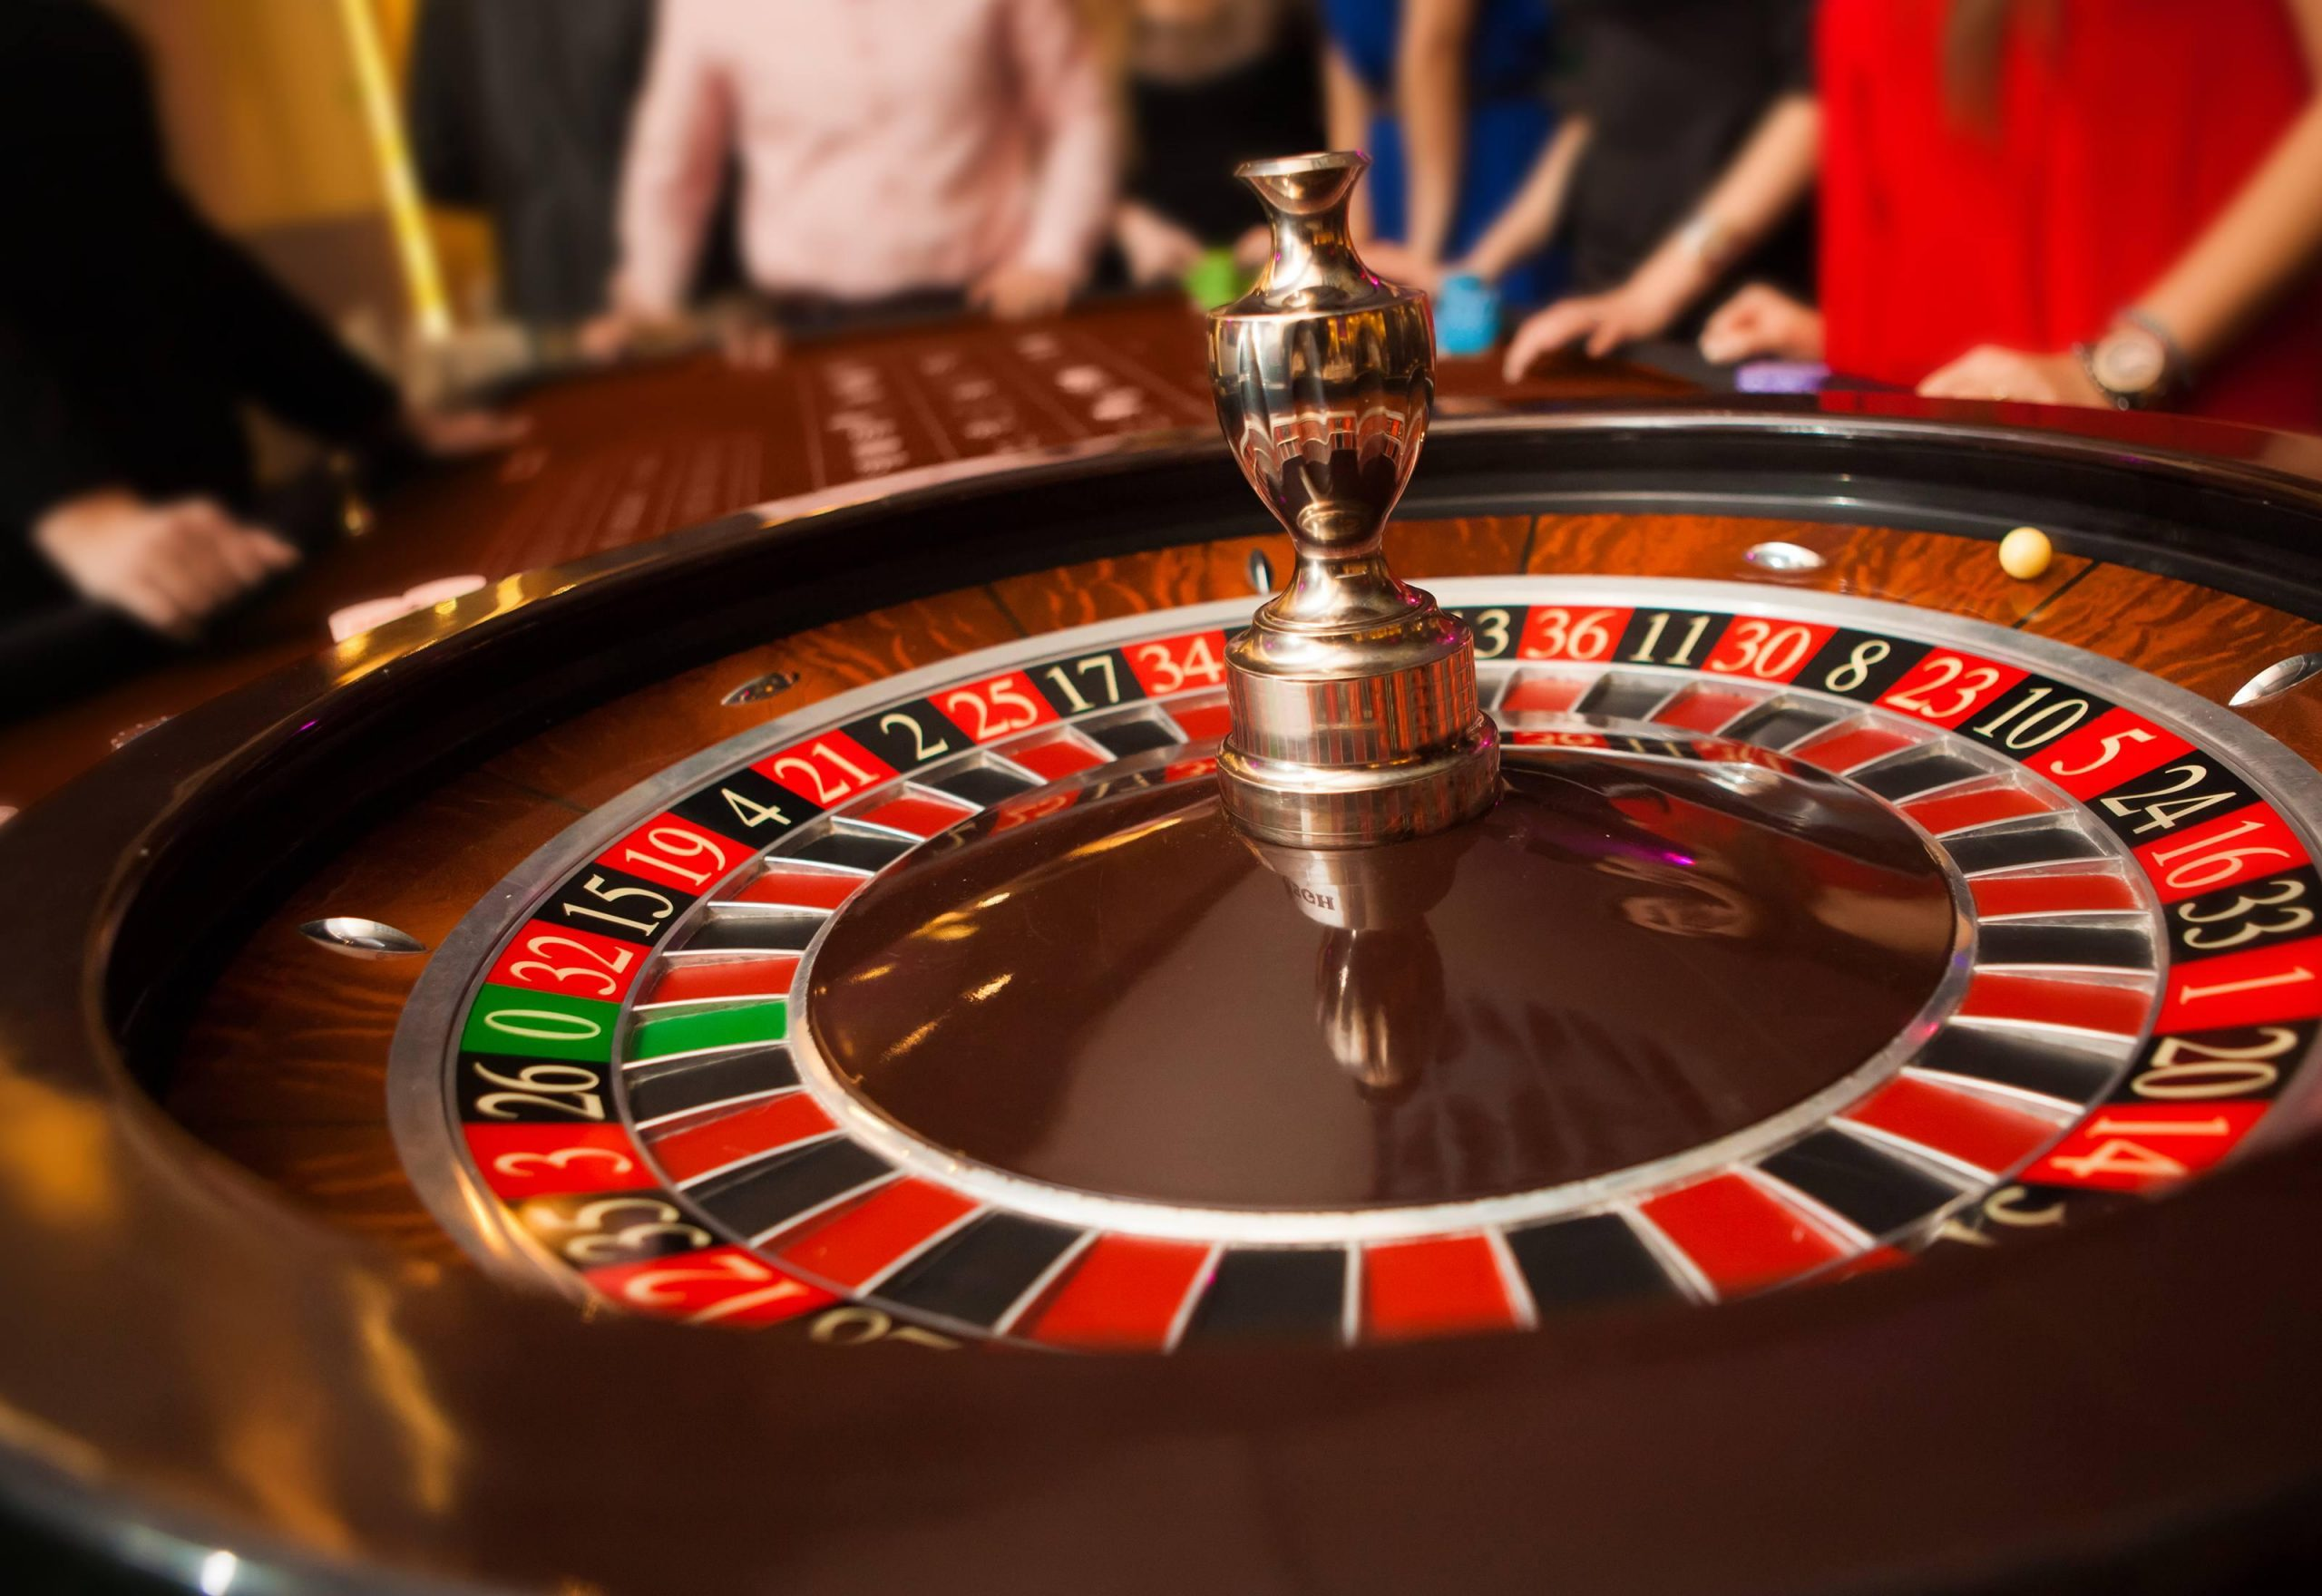 Bet and win with casino online Singapore